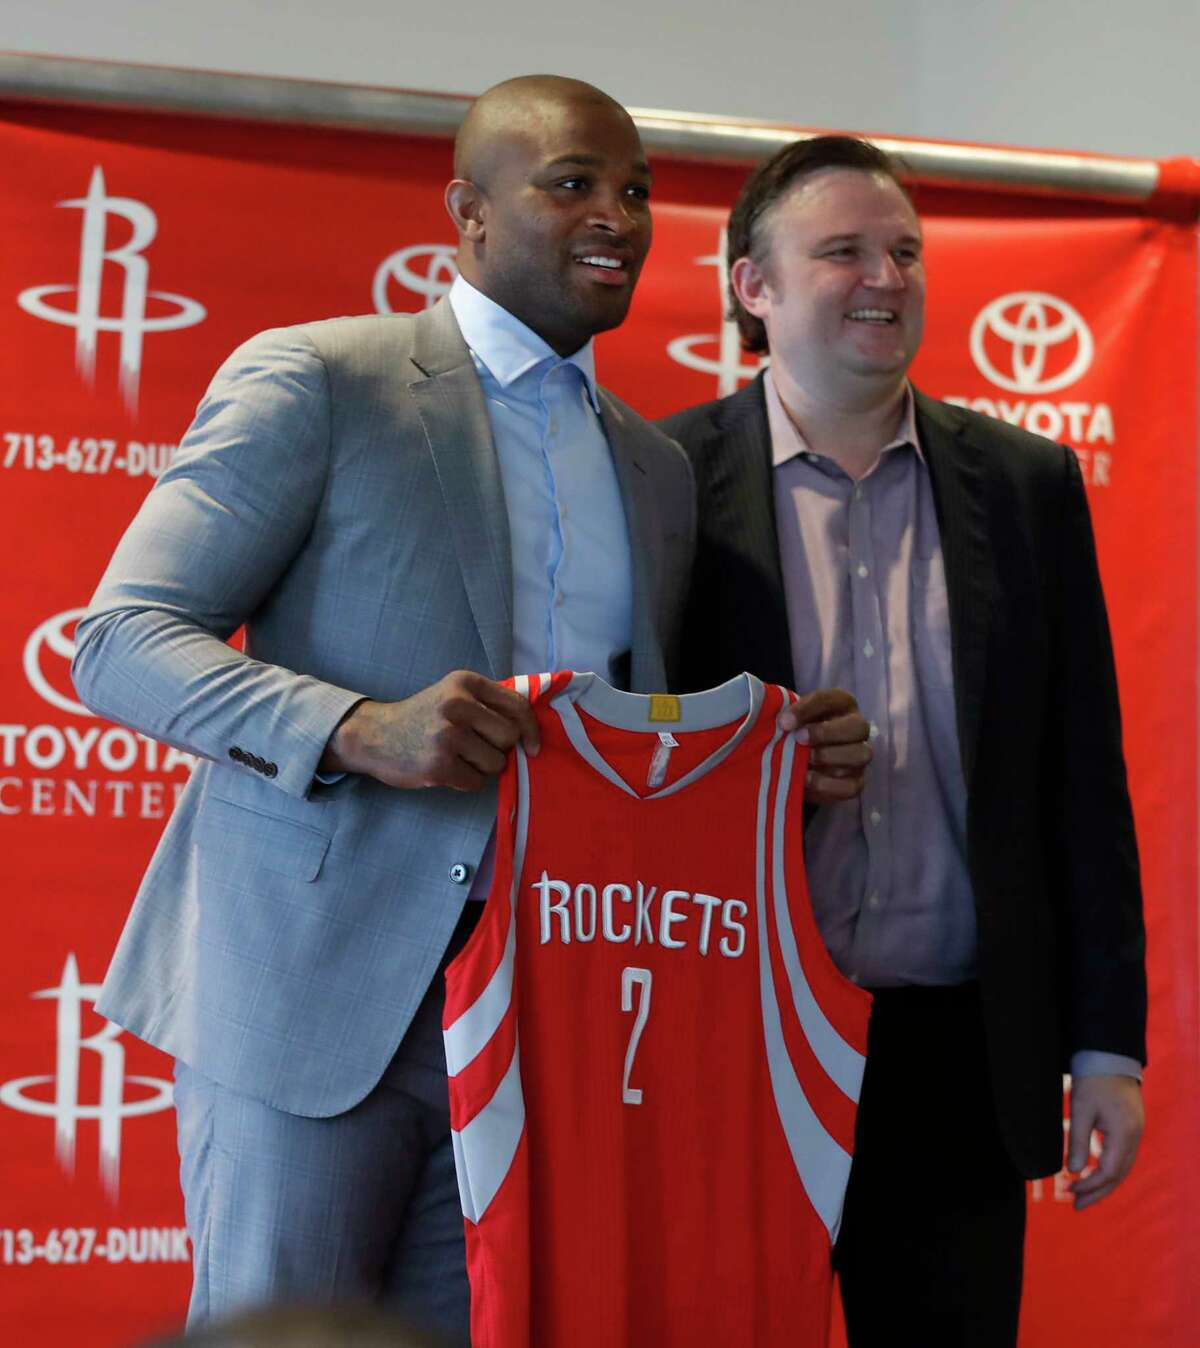 After signing with the Rockets on Thursday, P.J. Tucker, left, was praised by GM Daryl Morey as bringing the toughness and defense the team needs.